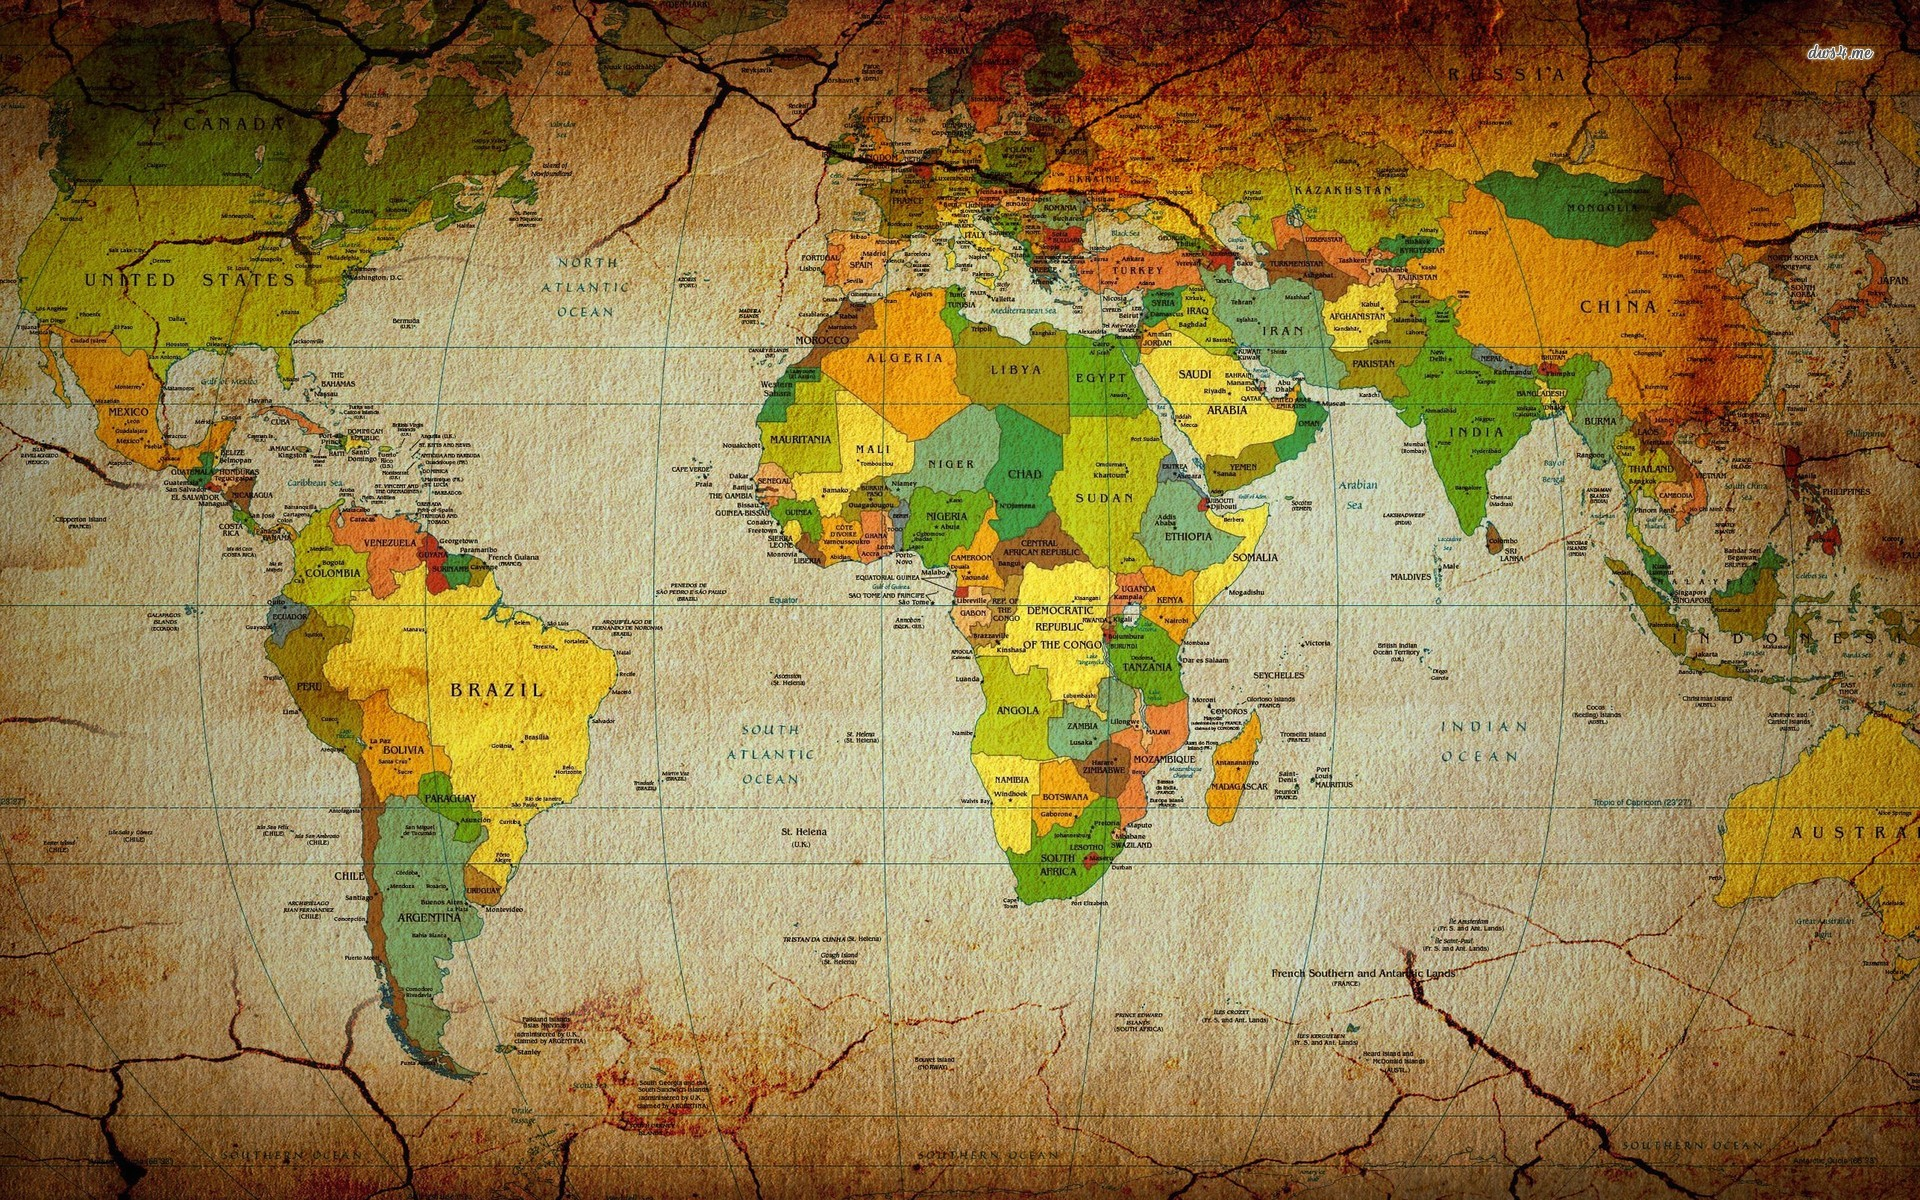 World map wallpaper 1920x1200 55911 World map wallpaper